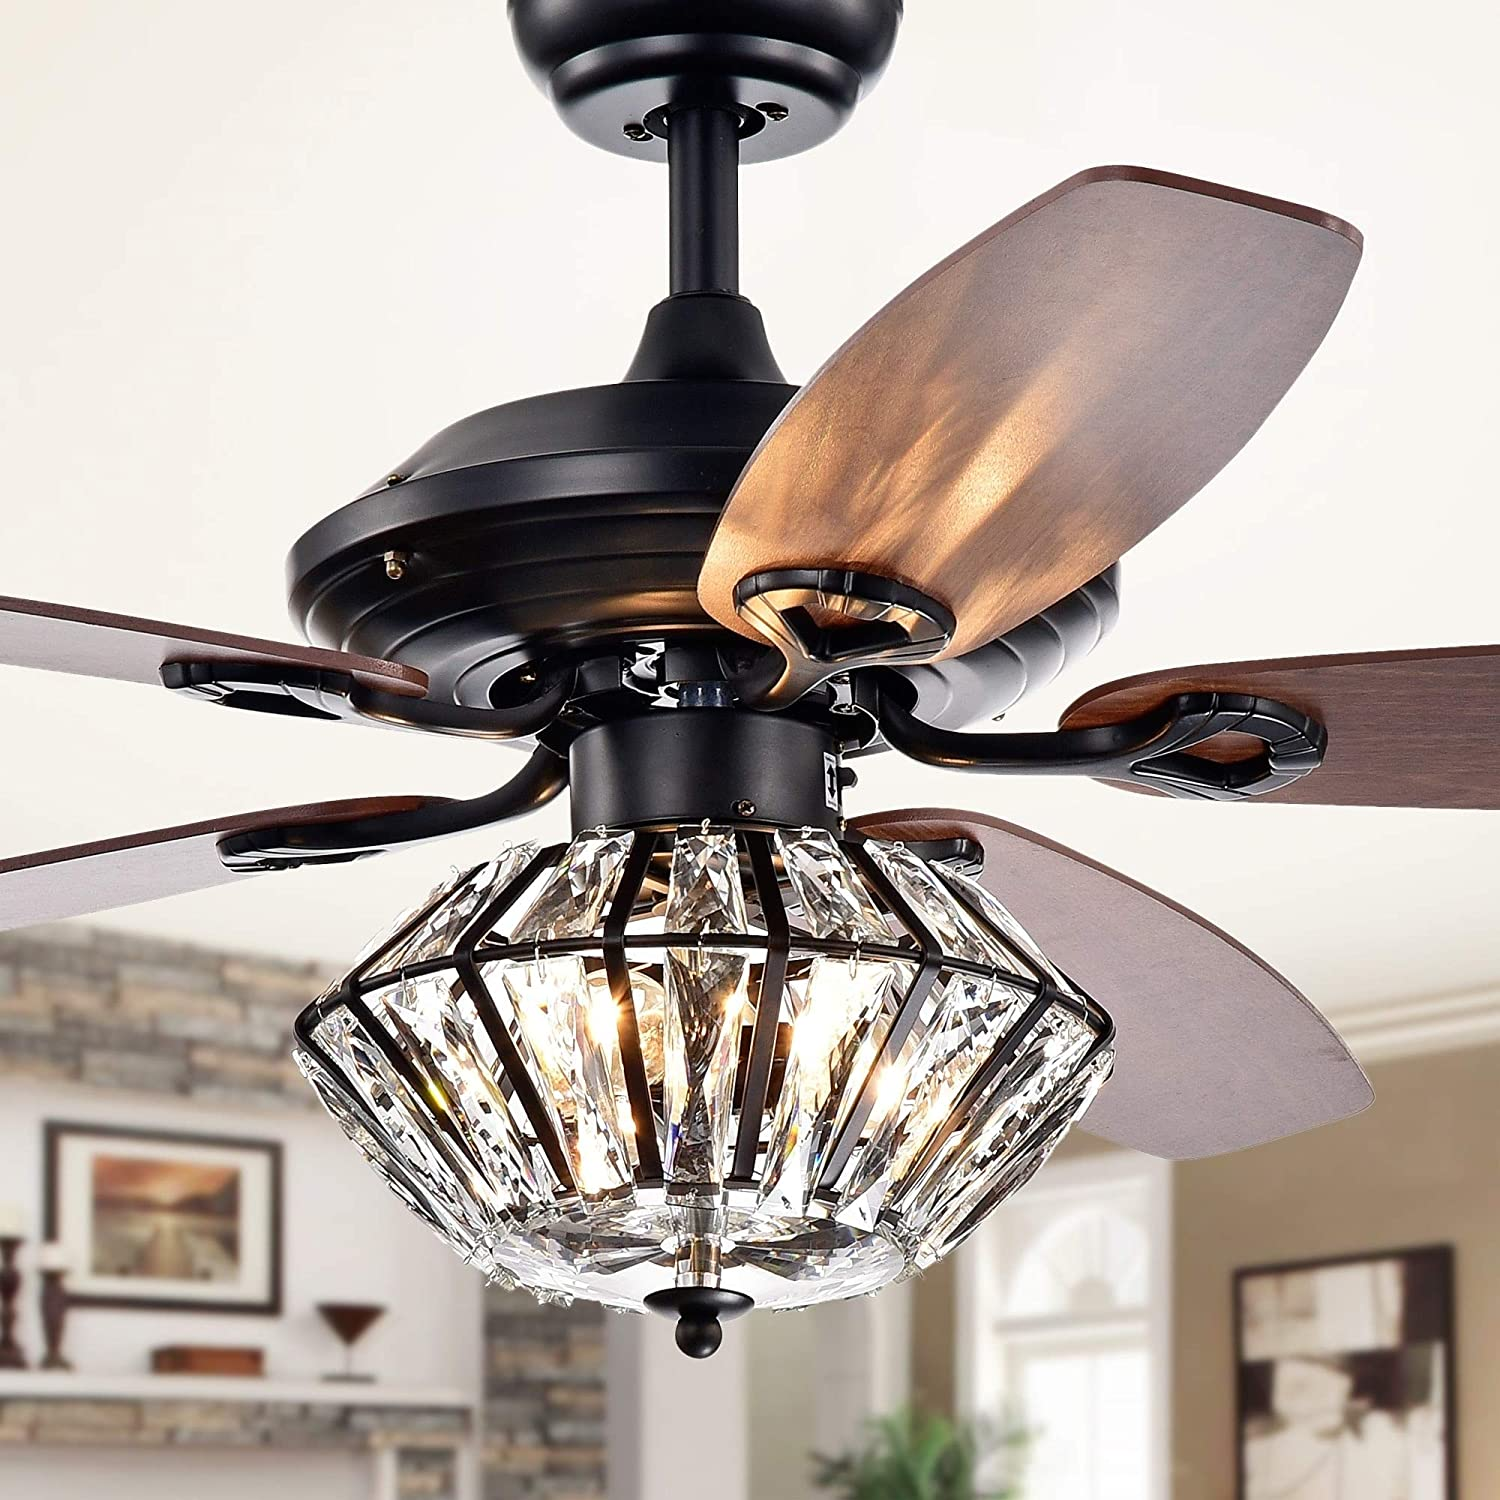 Black Ceiling Fan with Light Kit Crystal Chandeliers Fan Light 52 Metal Indoor Mute Quiet 5 Reversible Blades Remote Control Ceiling Fan Light 52-Inch Living Room Bedroom Crystal Fan Light